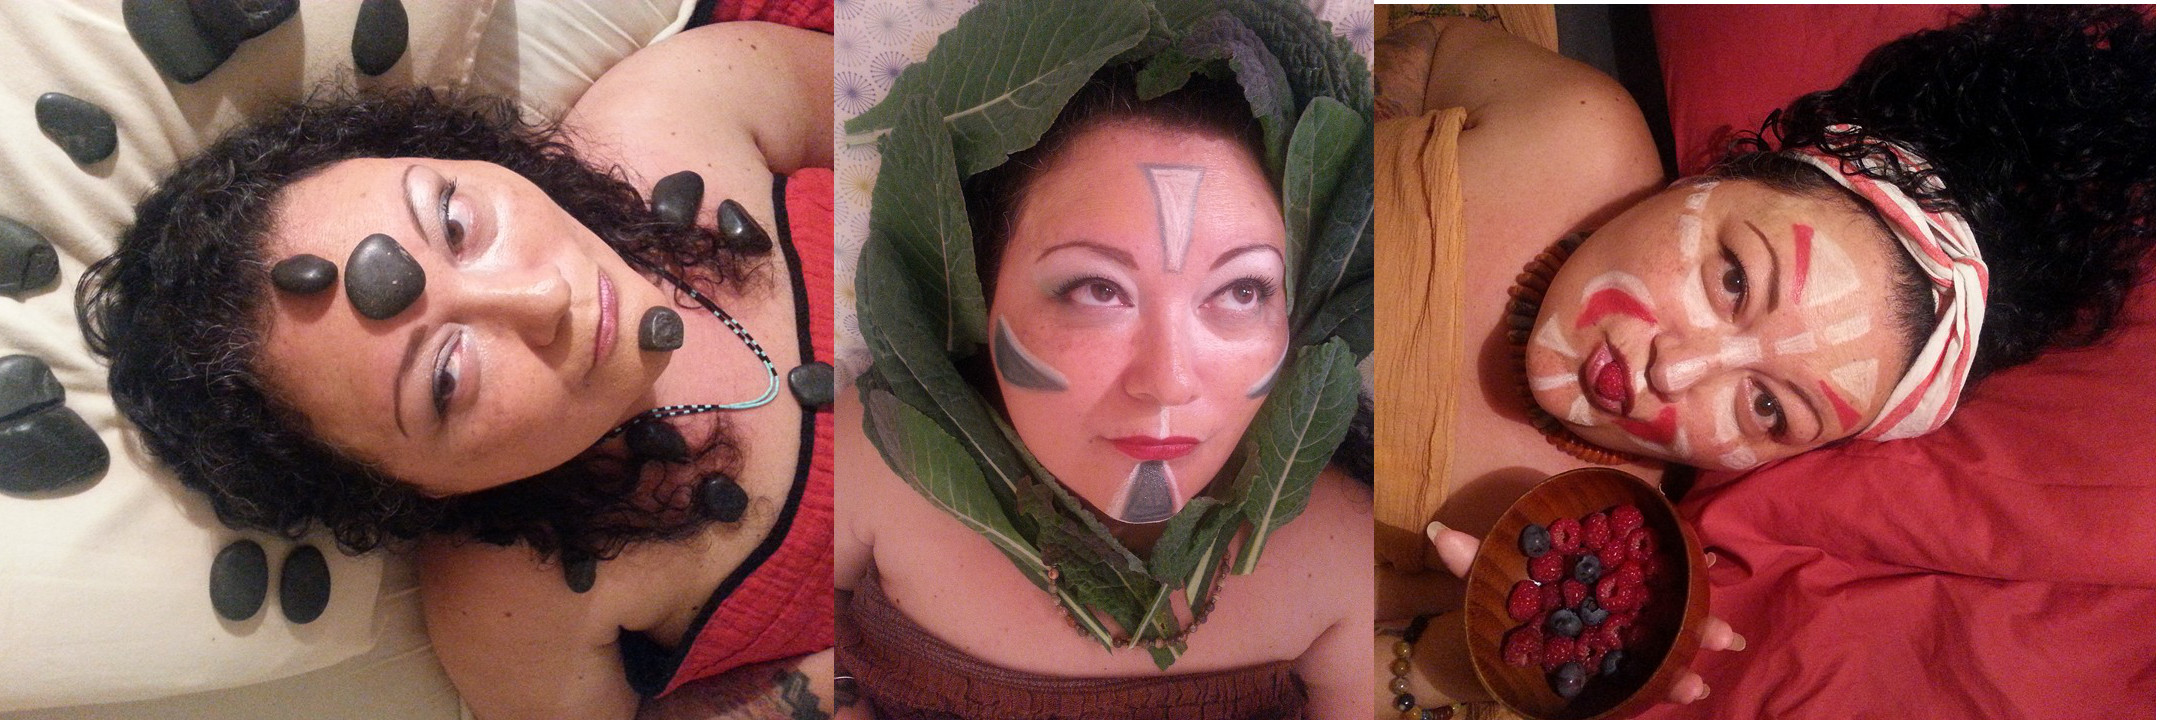 [Image Description: A tableau of three images of Patty Berne, a Hatian / Japanese crip with dark curly hair. In the center, their face is painted with white and grey geometric shapes and their head is framed by kale leaves. On the left, they lie on a white pillow with their hair down and black shiny stones placed on their face, chest, and surrounding their head. On the right,  they lie on a red pillow with their hair piled on their head and a red and white headwrap. Their face is painted with red and white geometric shapes, and they hold a raspberry in their pursed lips.}